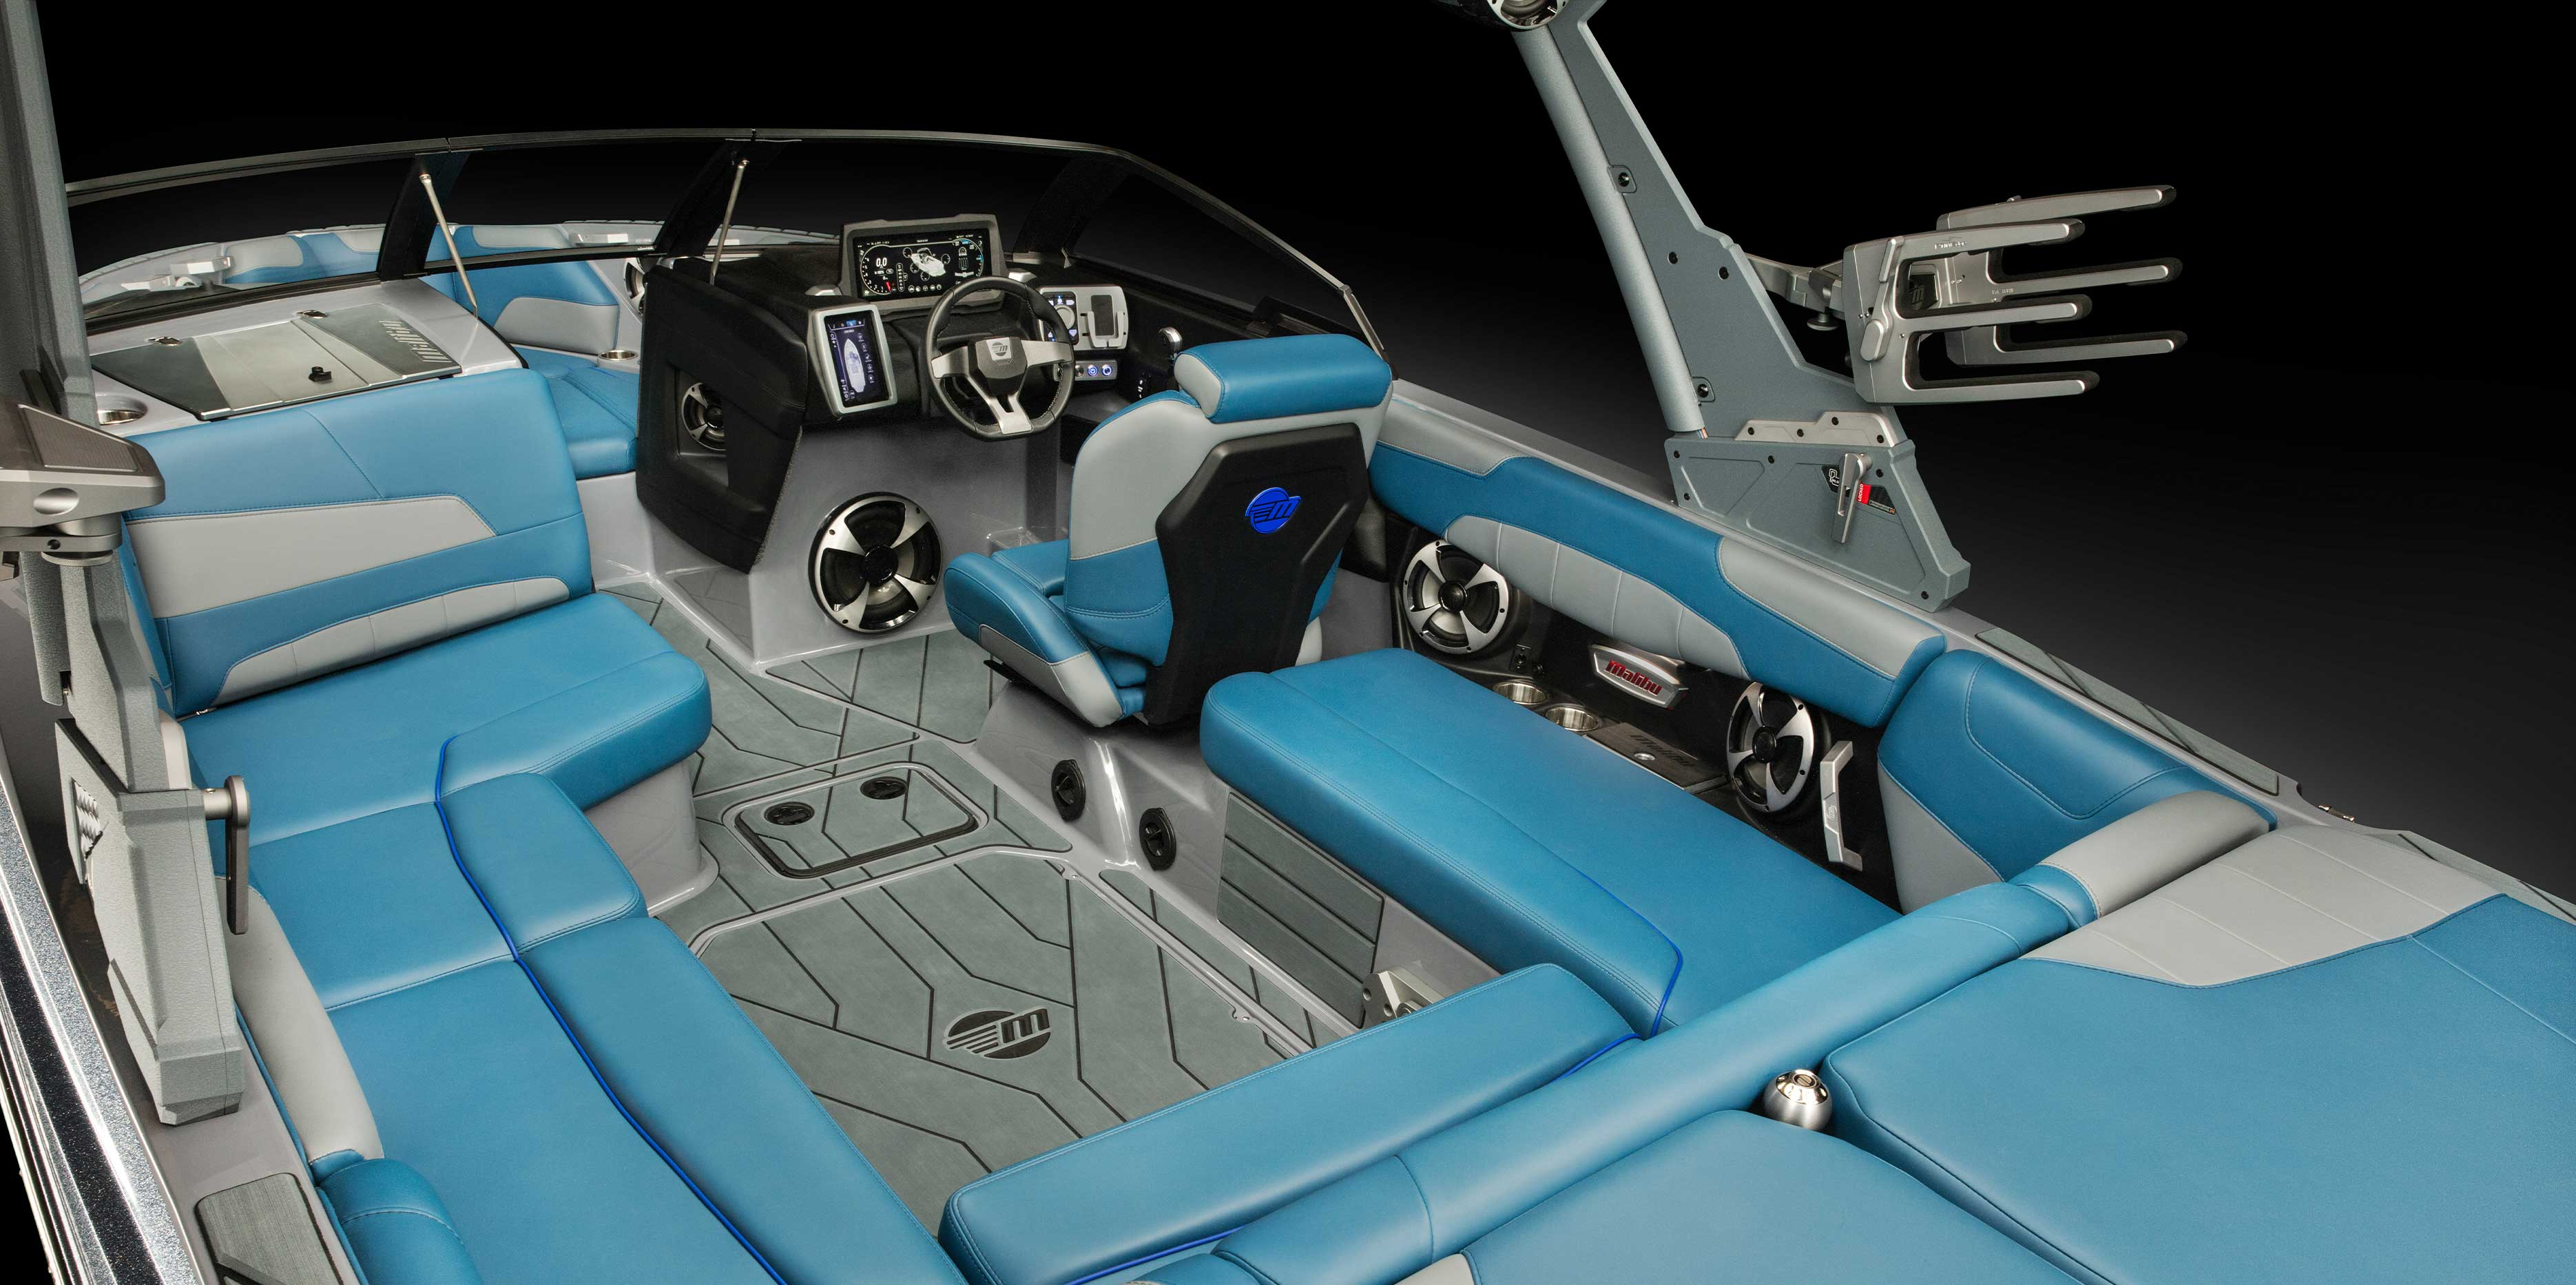 Malibu 22 LSV Interior Layout